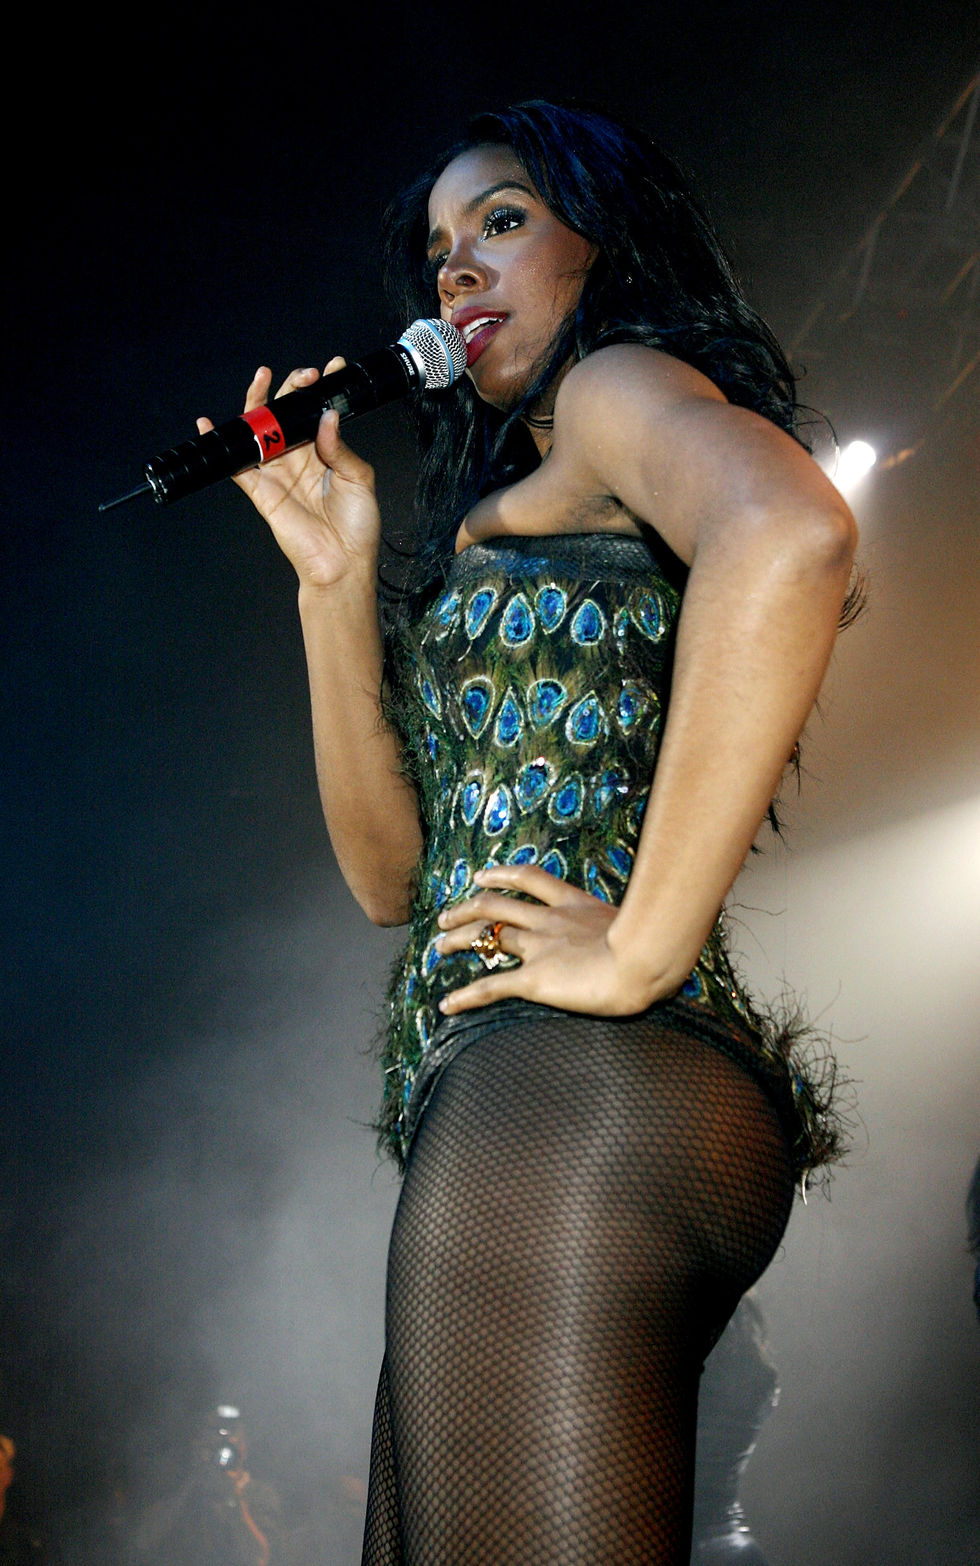 kelly-rowland-performs-on-stage-at-g-a-y-astoria-club-in-london-04